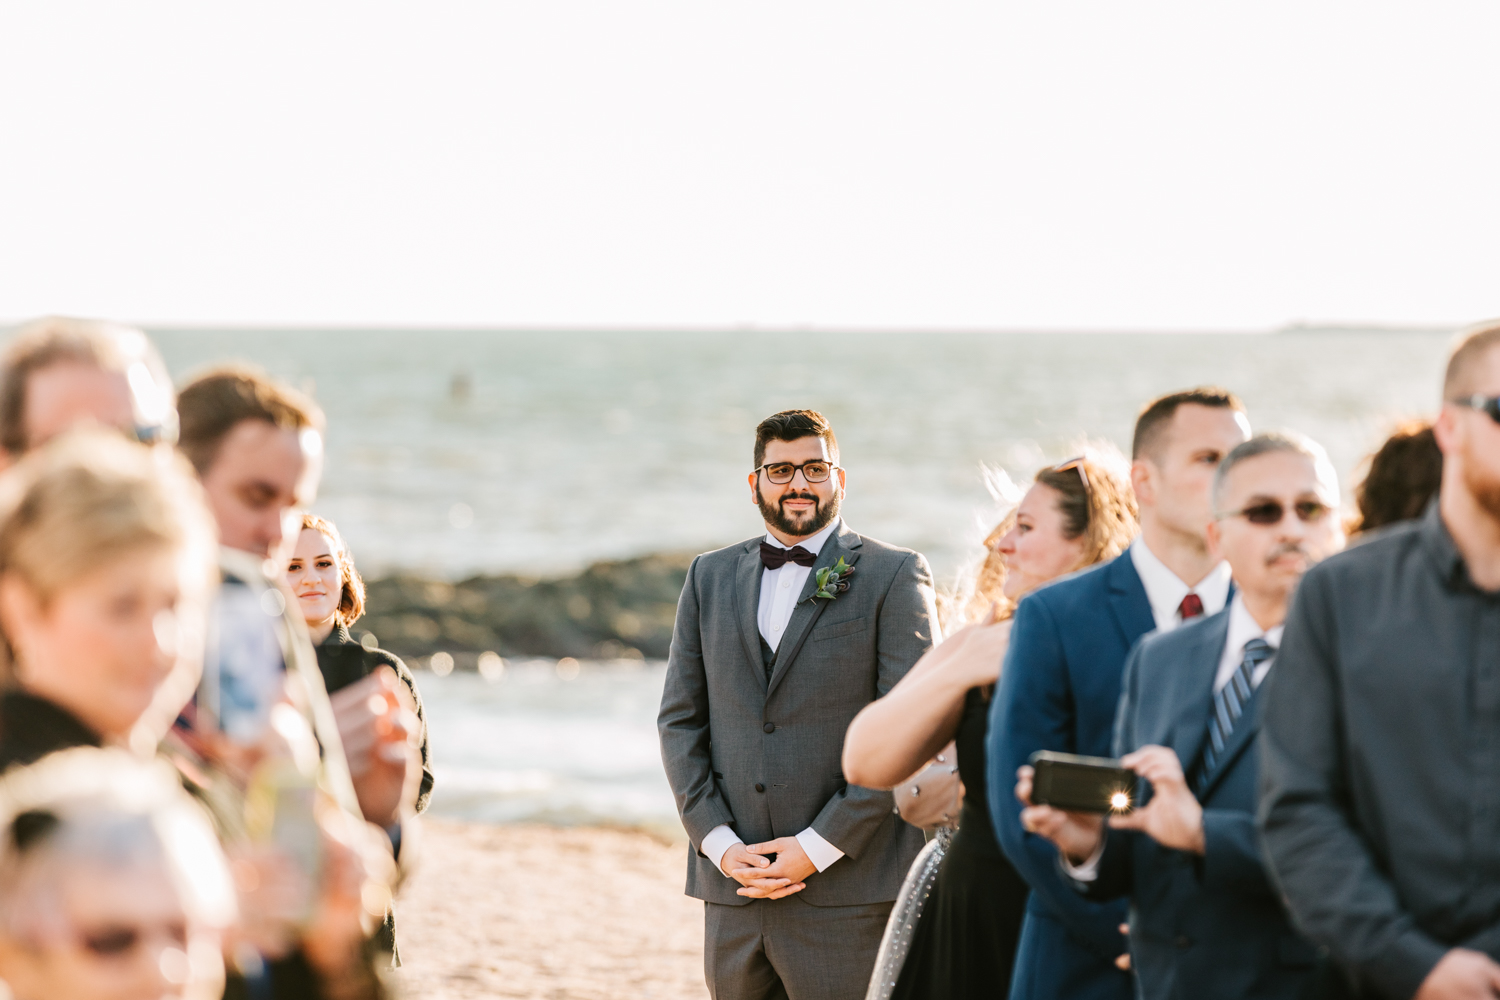 Groom seeing bride on wedding day during beach ceremony